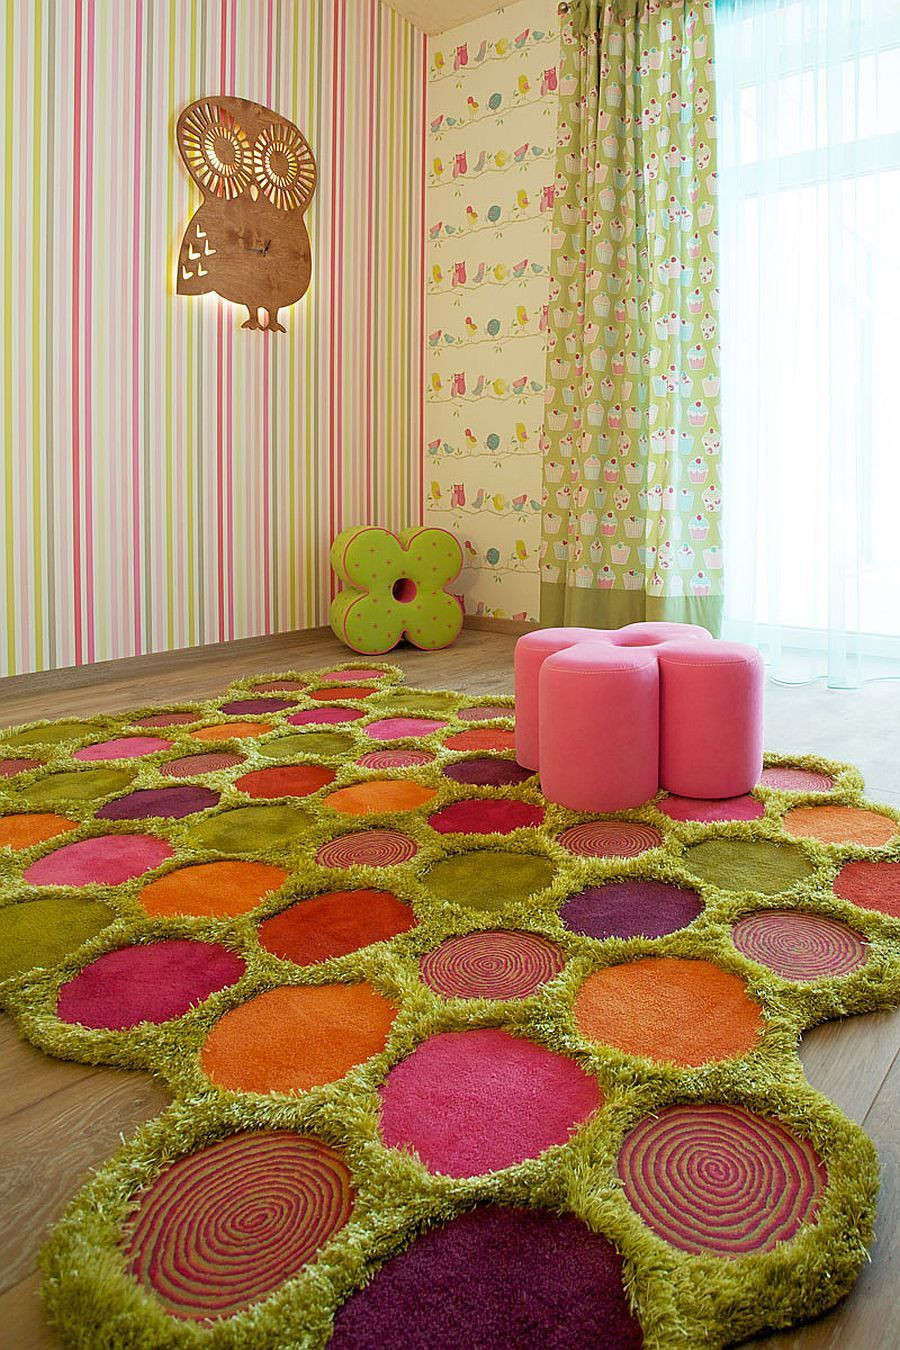 Best Carpet For Kids Room  Colorful Zest 25 Eye Catching Rug Ideas for Kids' Rooms